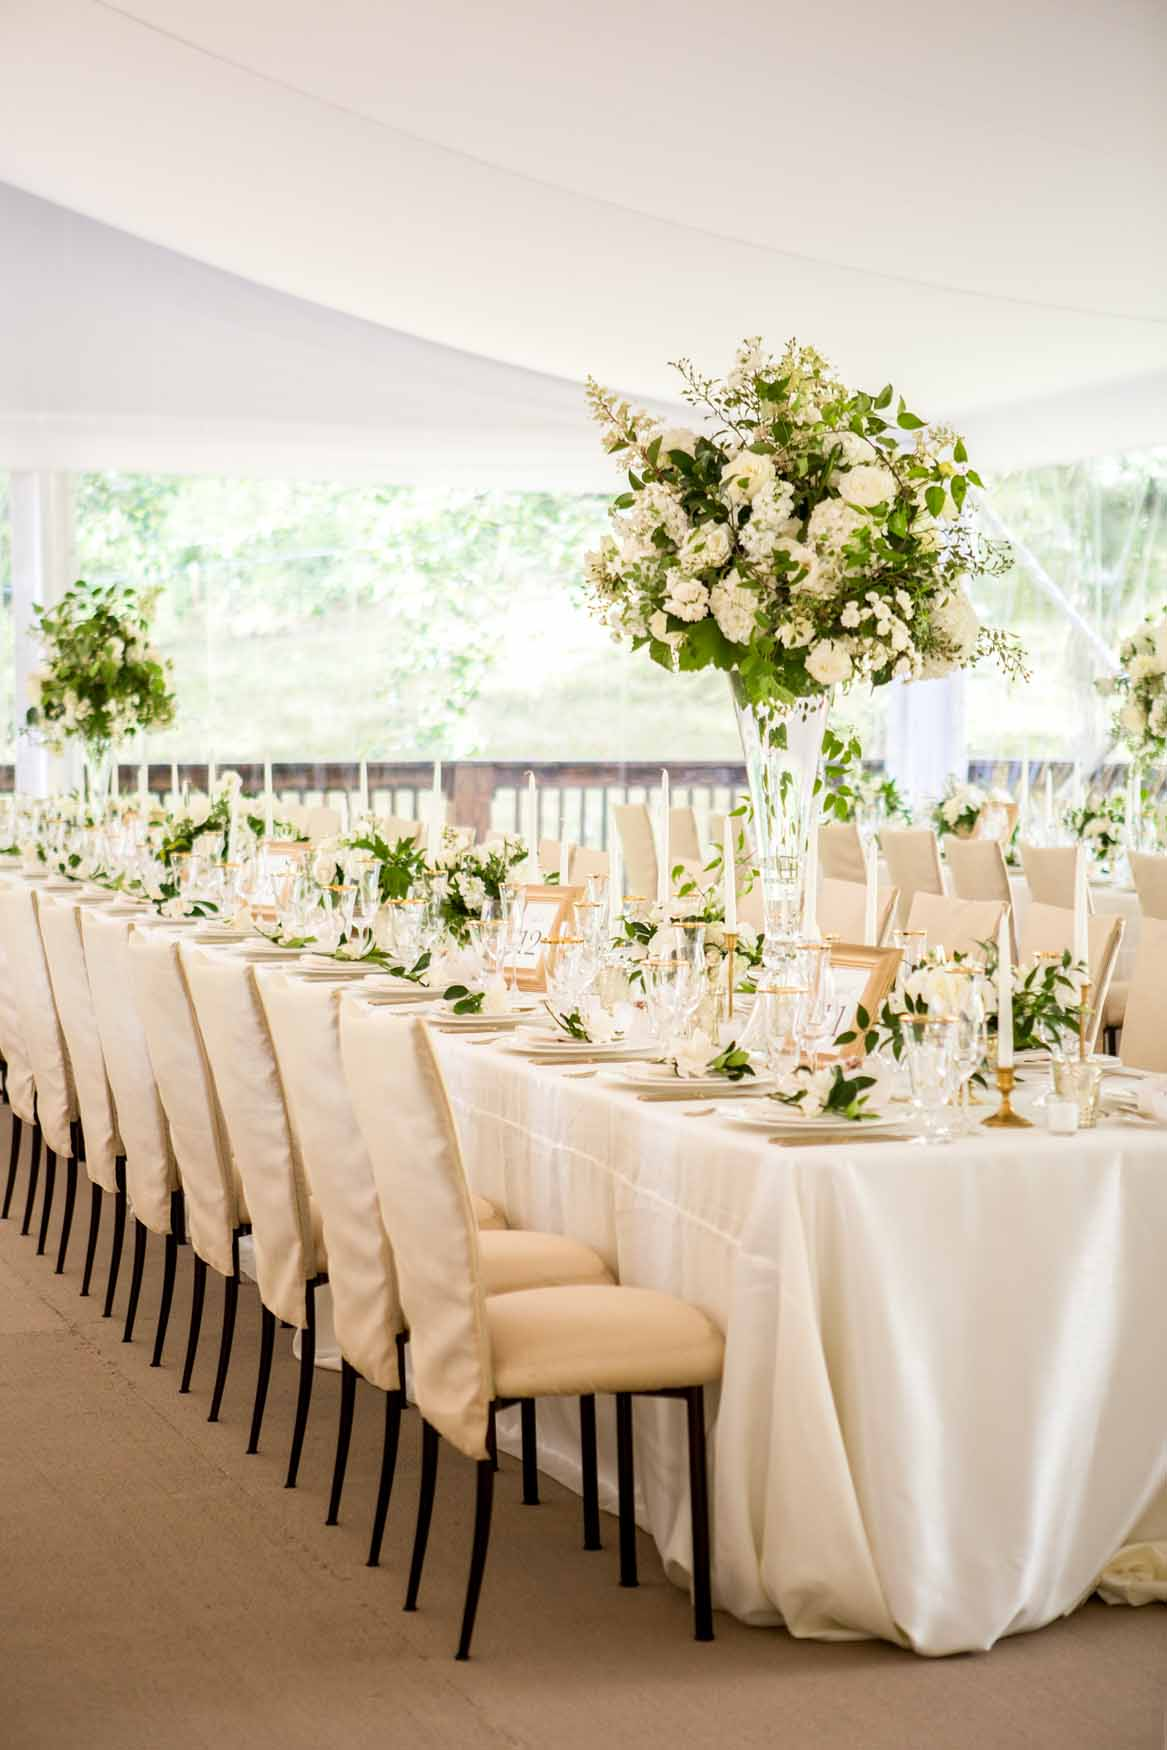 A long table filles with tall and low centerpieces - Elegant Summer Private Estate Wedding. Flora Nova Design Seattle